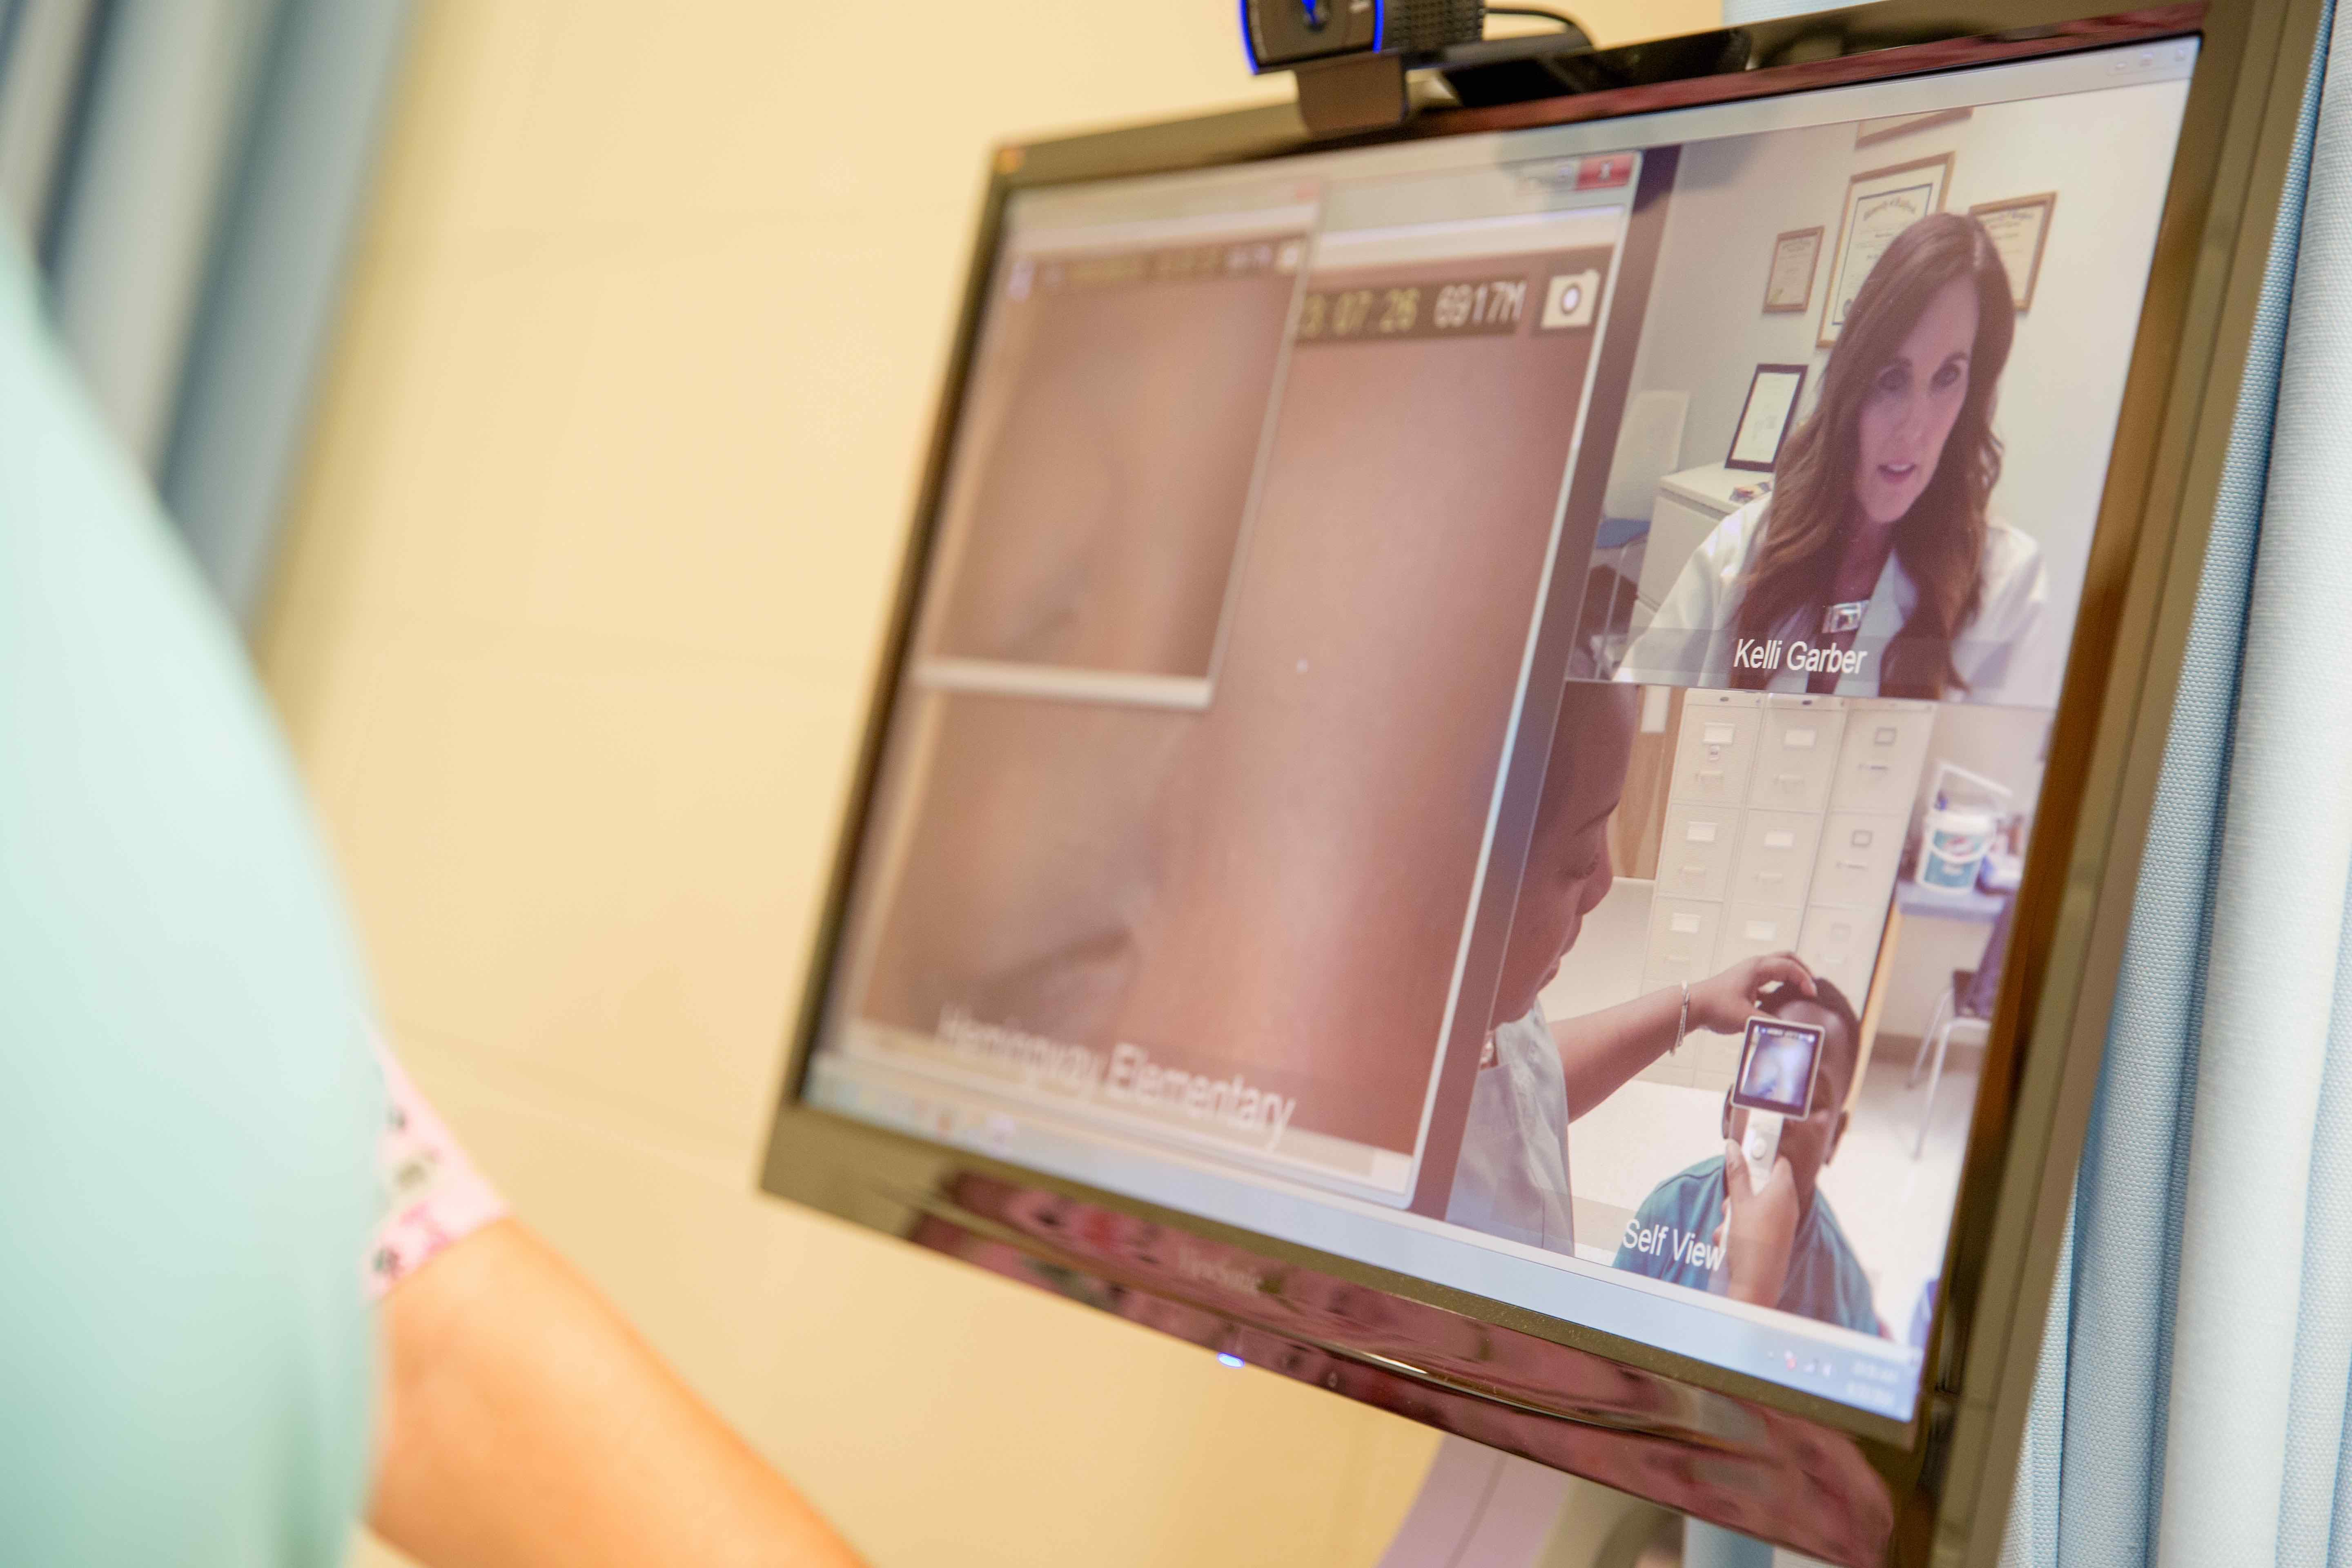 Close-up of Telehealth monitor showing Kelli Garber, MSN, APRN, lead nurse practitioner & clinical integration specialist at the Medical University of South Carolina Center for Telehealth, and a student